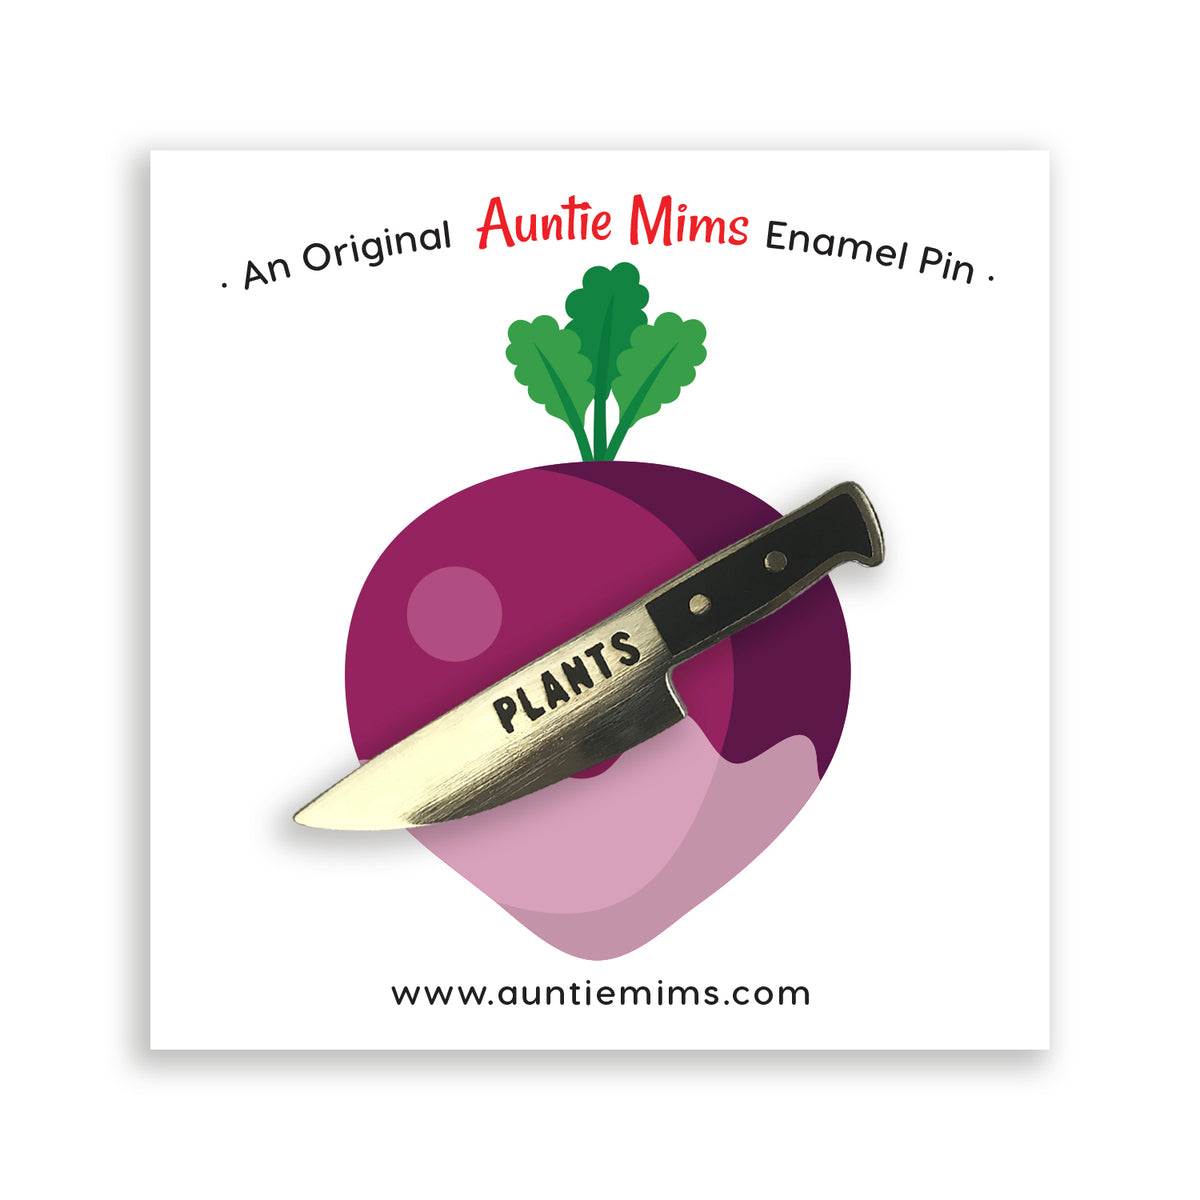 Plants Knife Pin - a Unique gift and original gift from Auntie Mims ideal for Christmas